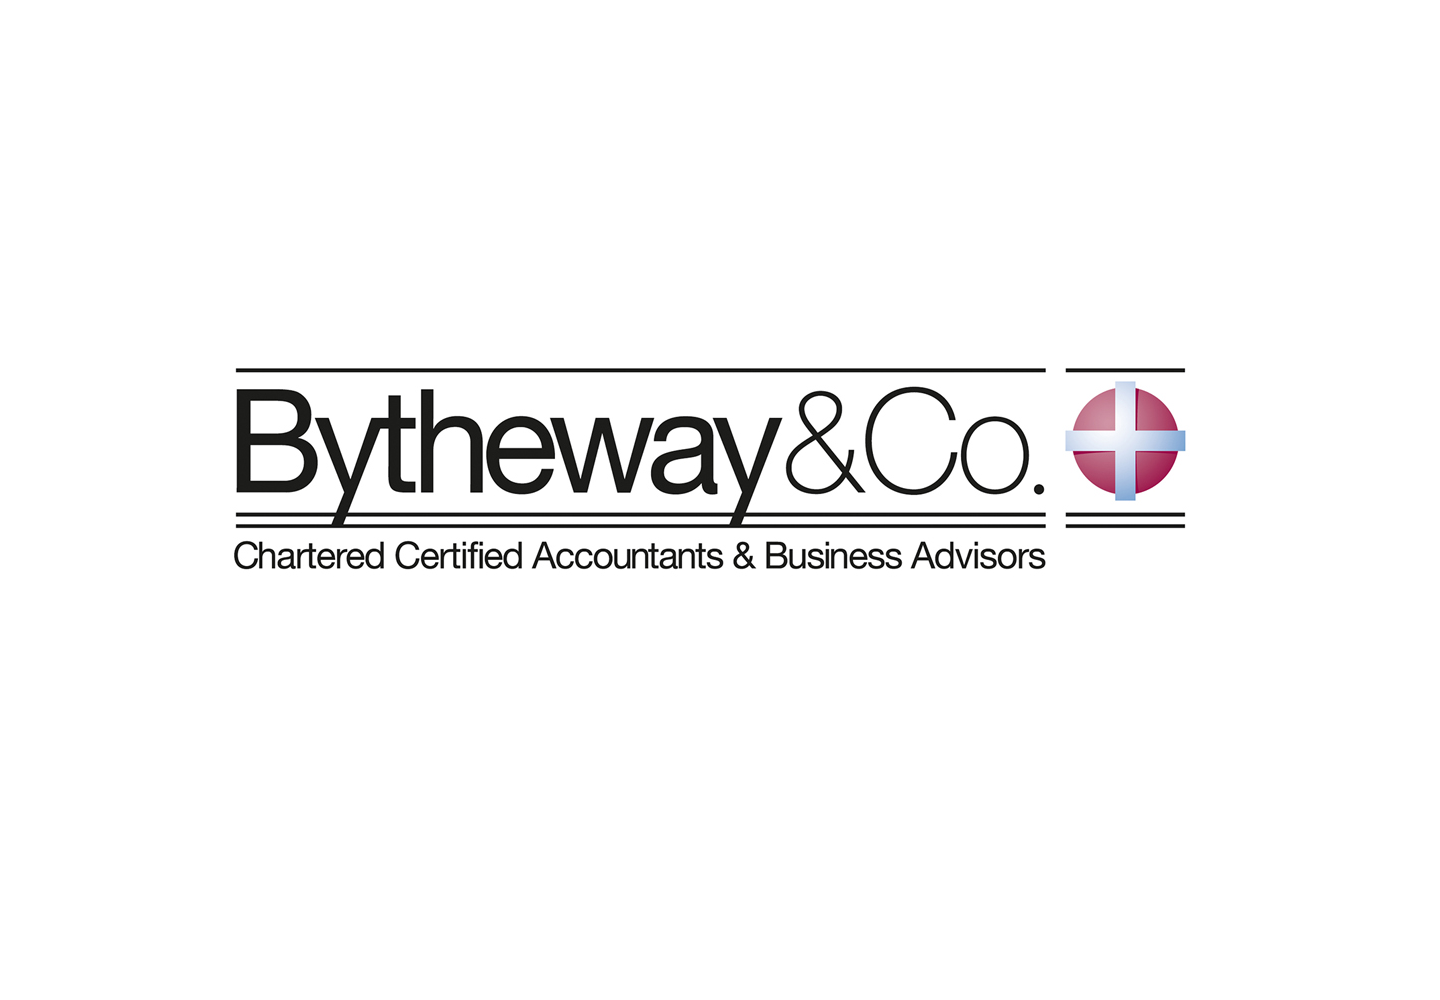 http://rusyndesign.co.uk/wp-content/uploads/2021/02/Branding-Bytheway.png